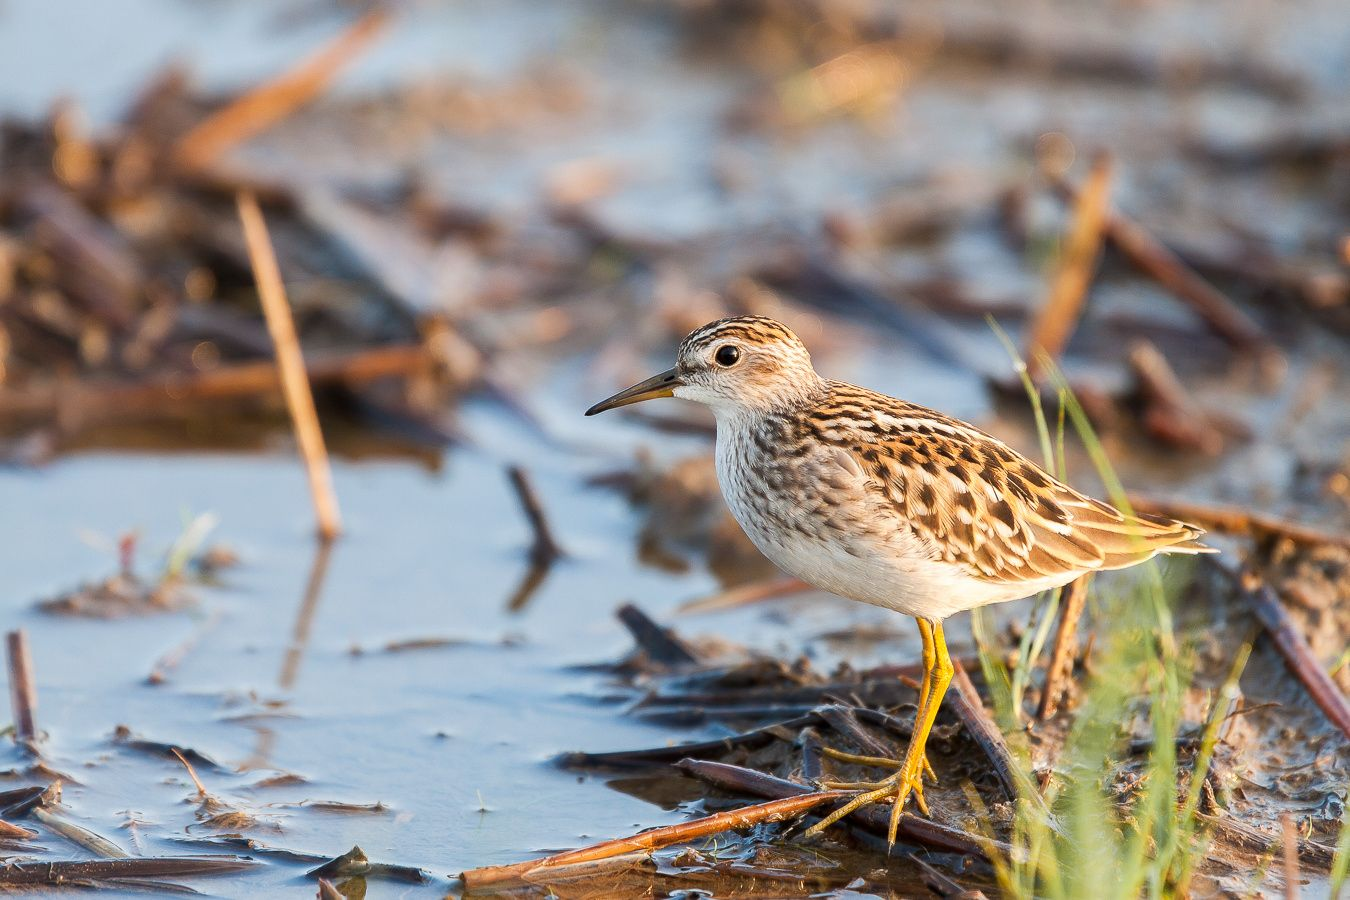 japanese name : ヒバリシギ(Hibarishigi)  The long-toed stint is a very small wader measuring just 13 to 16 cm (5.1 to 6.3 in)